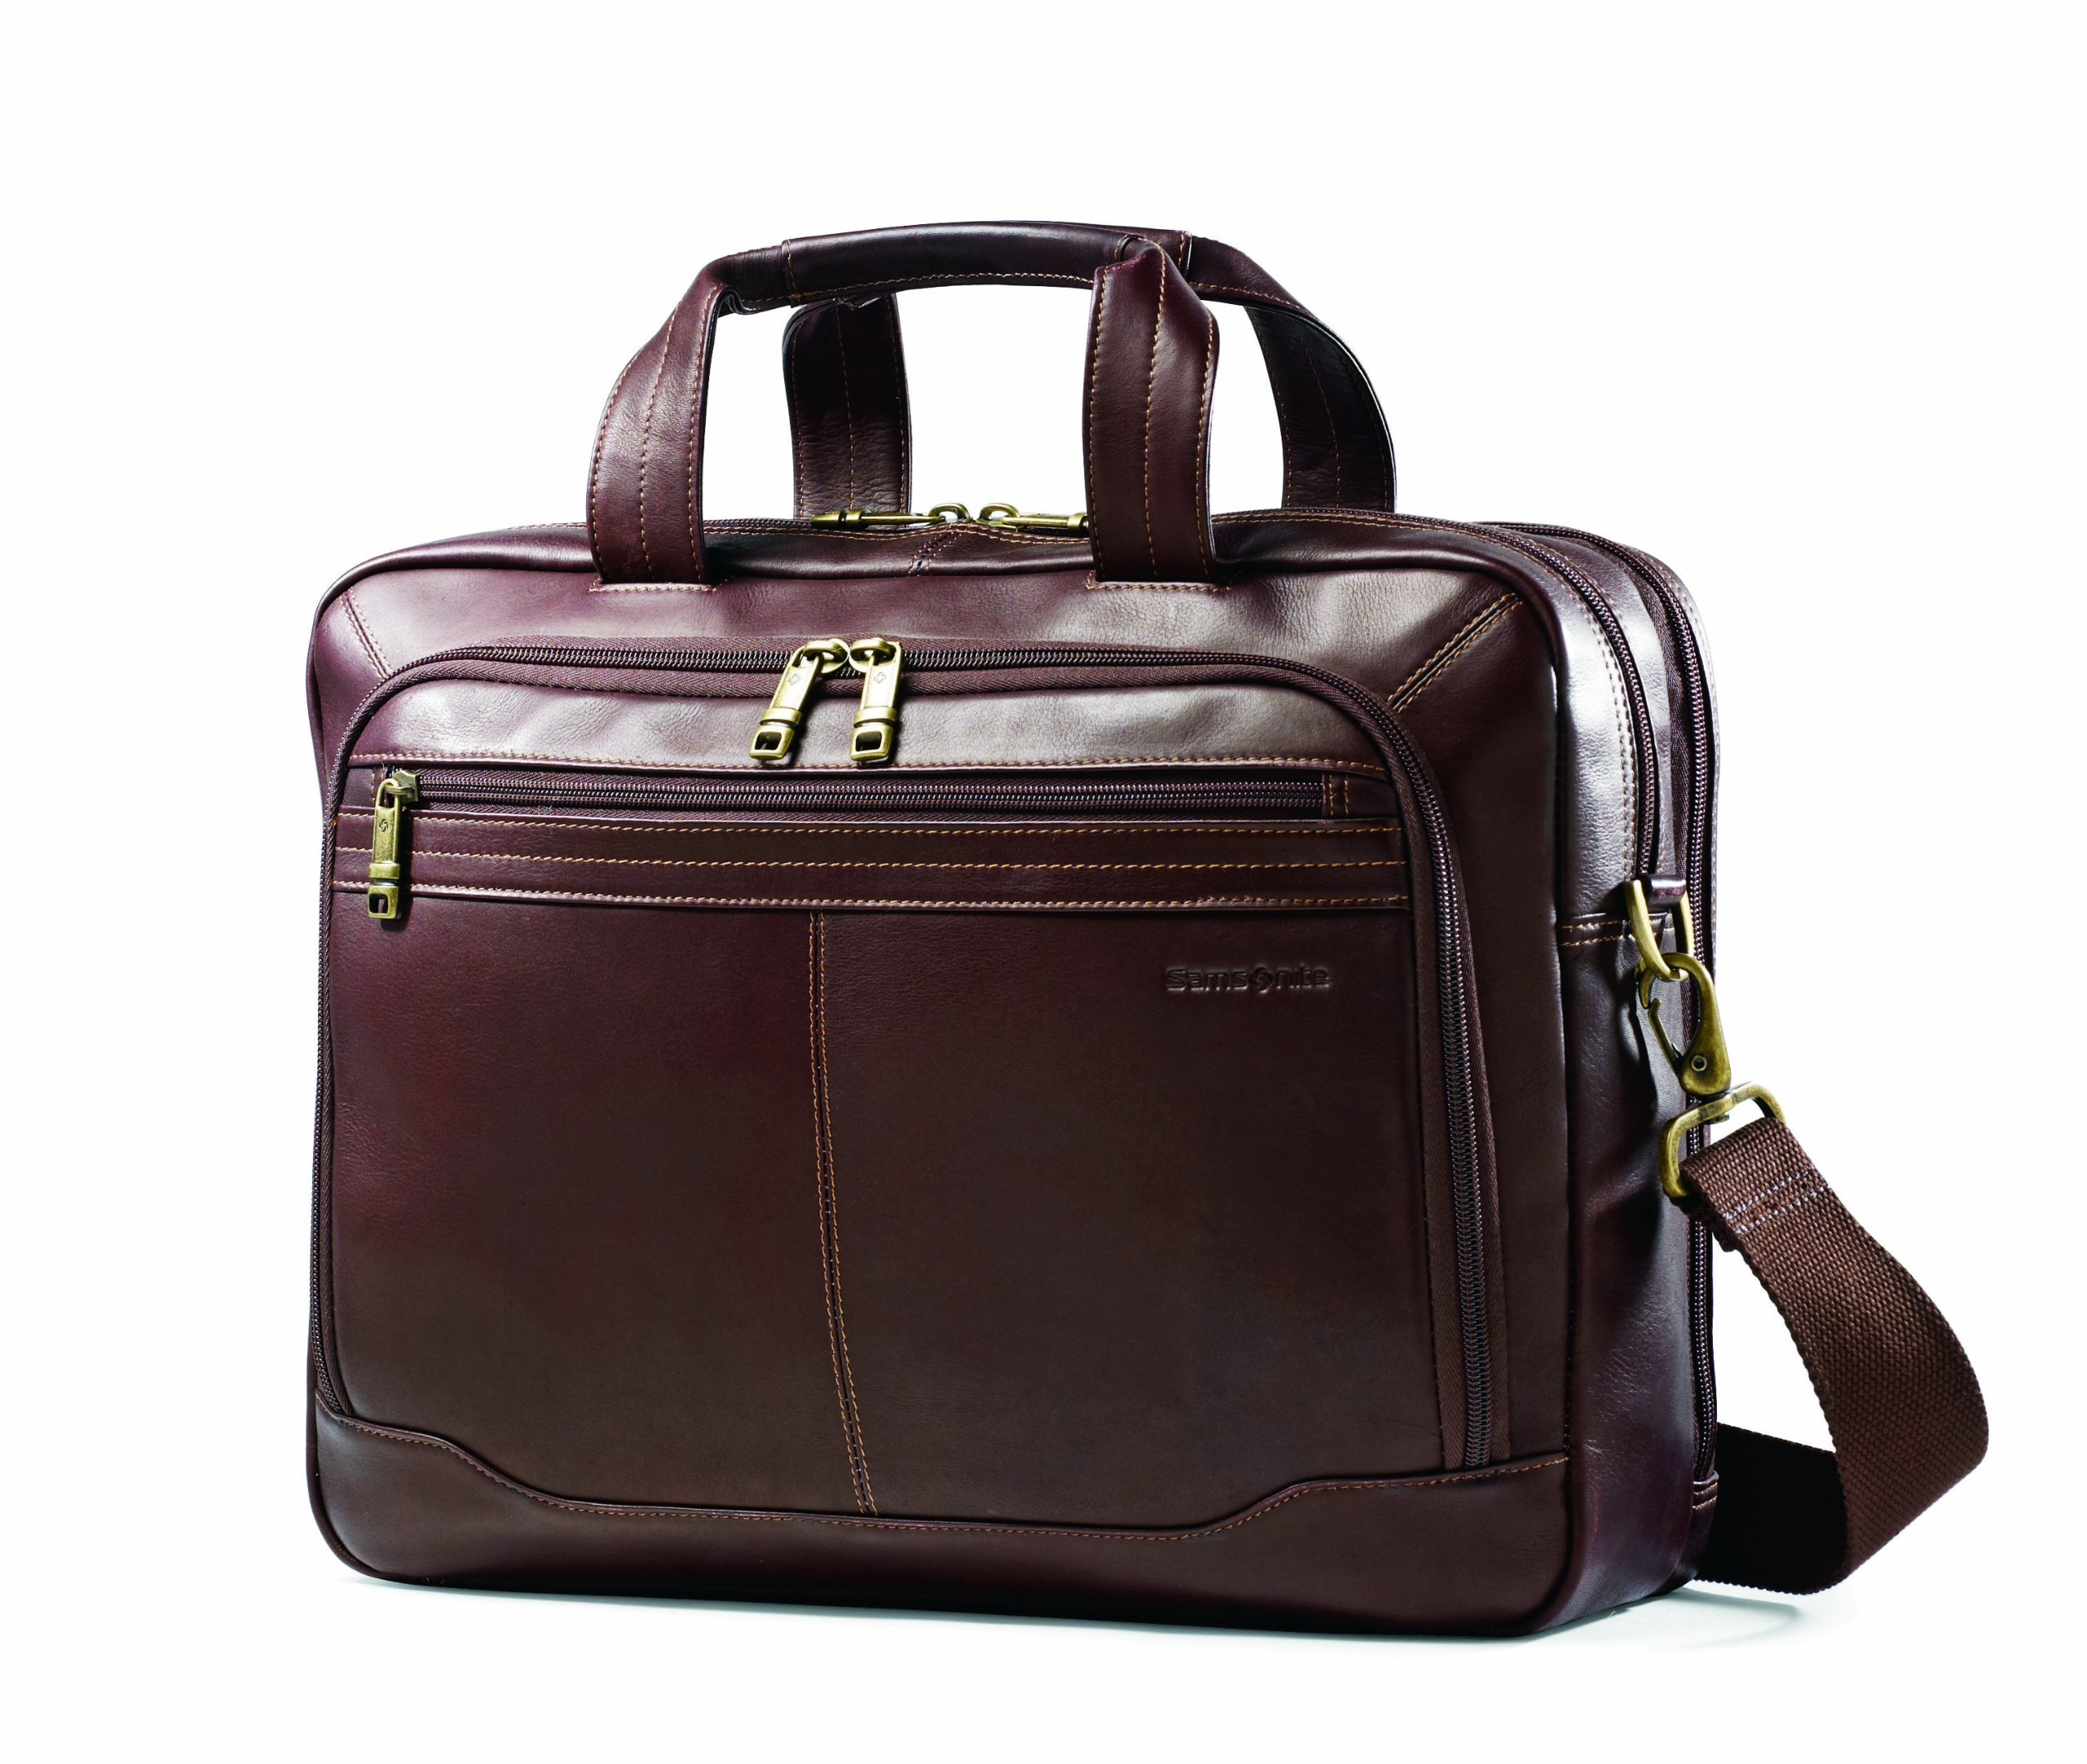 Samsonite Colombian Leather Toploader, Brown, One Size